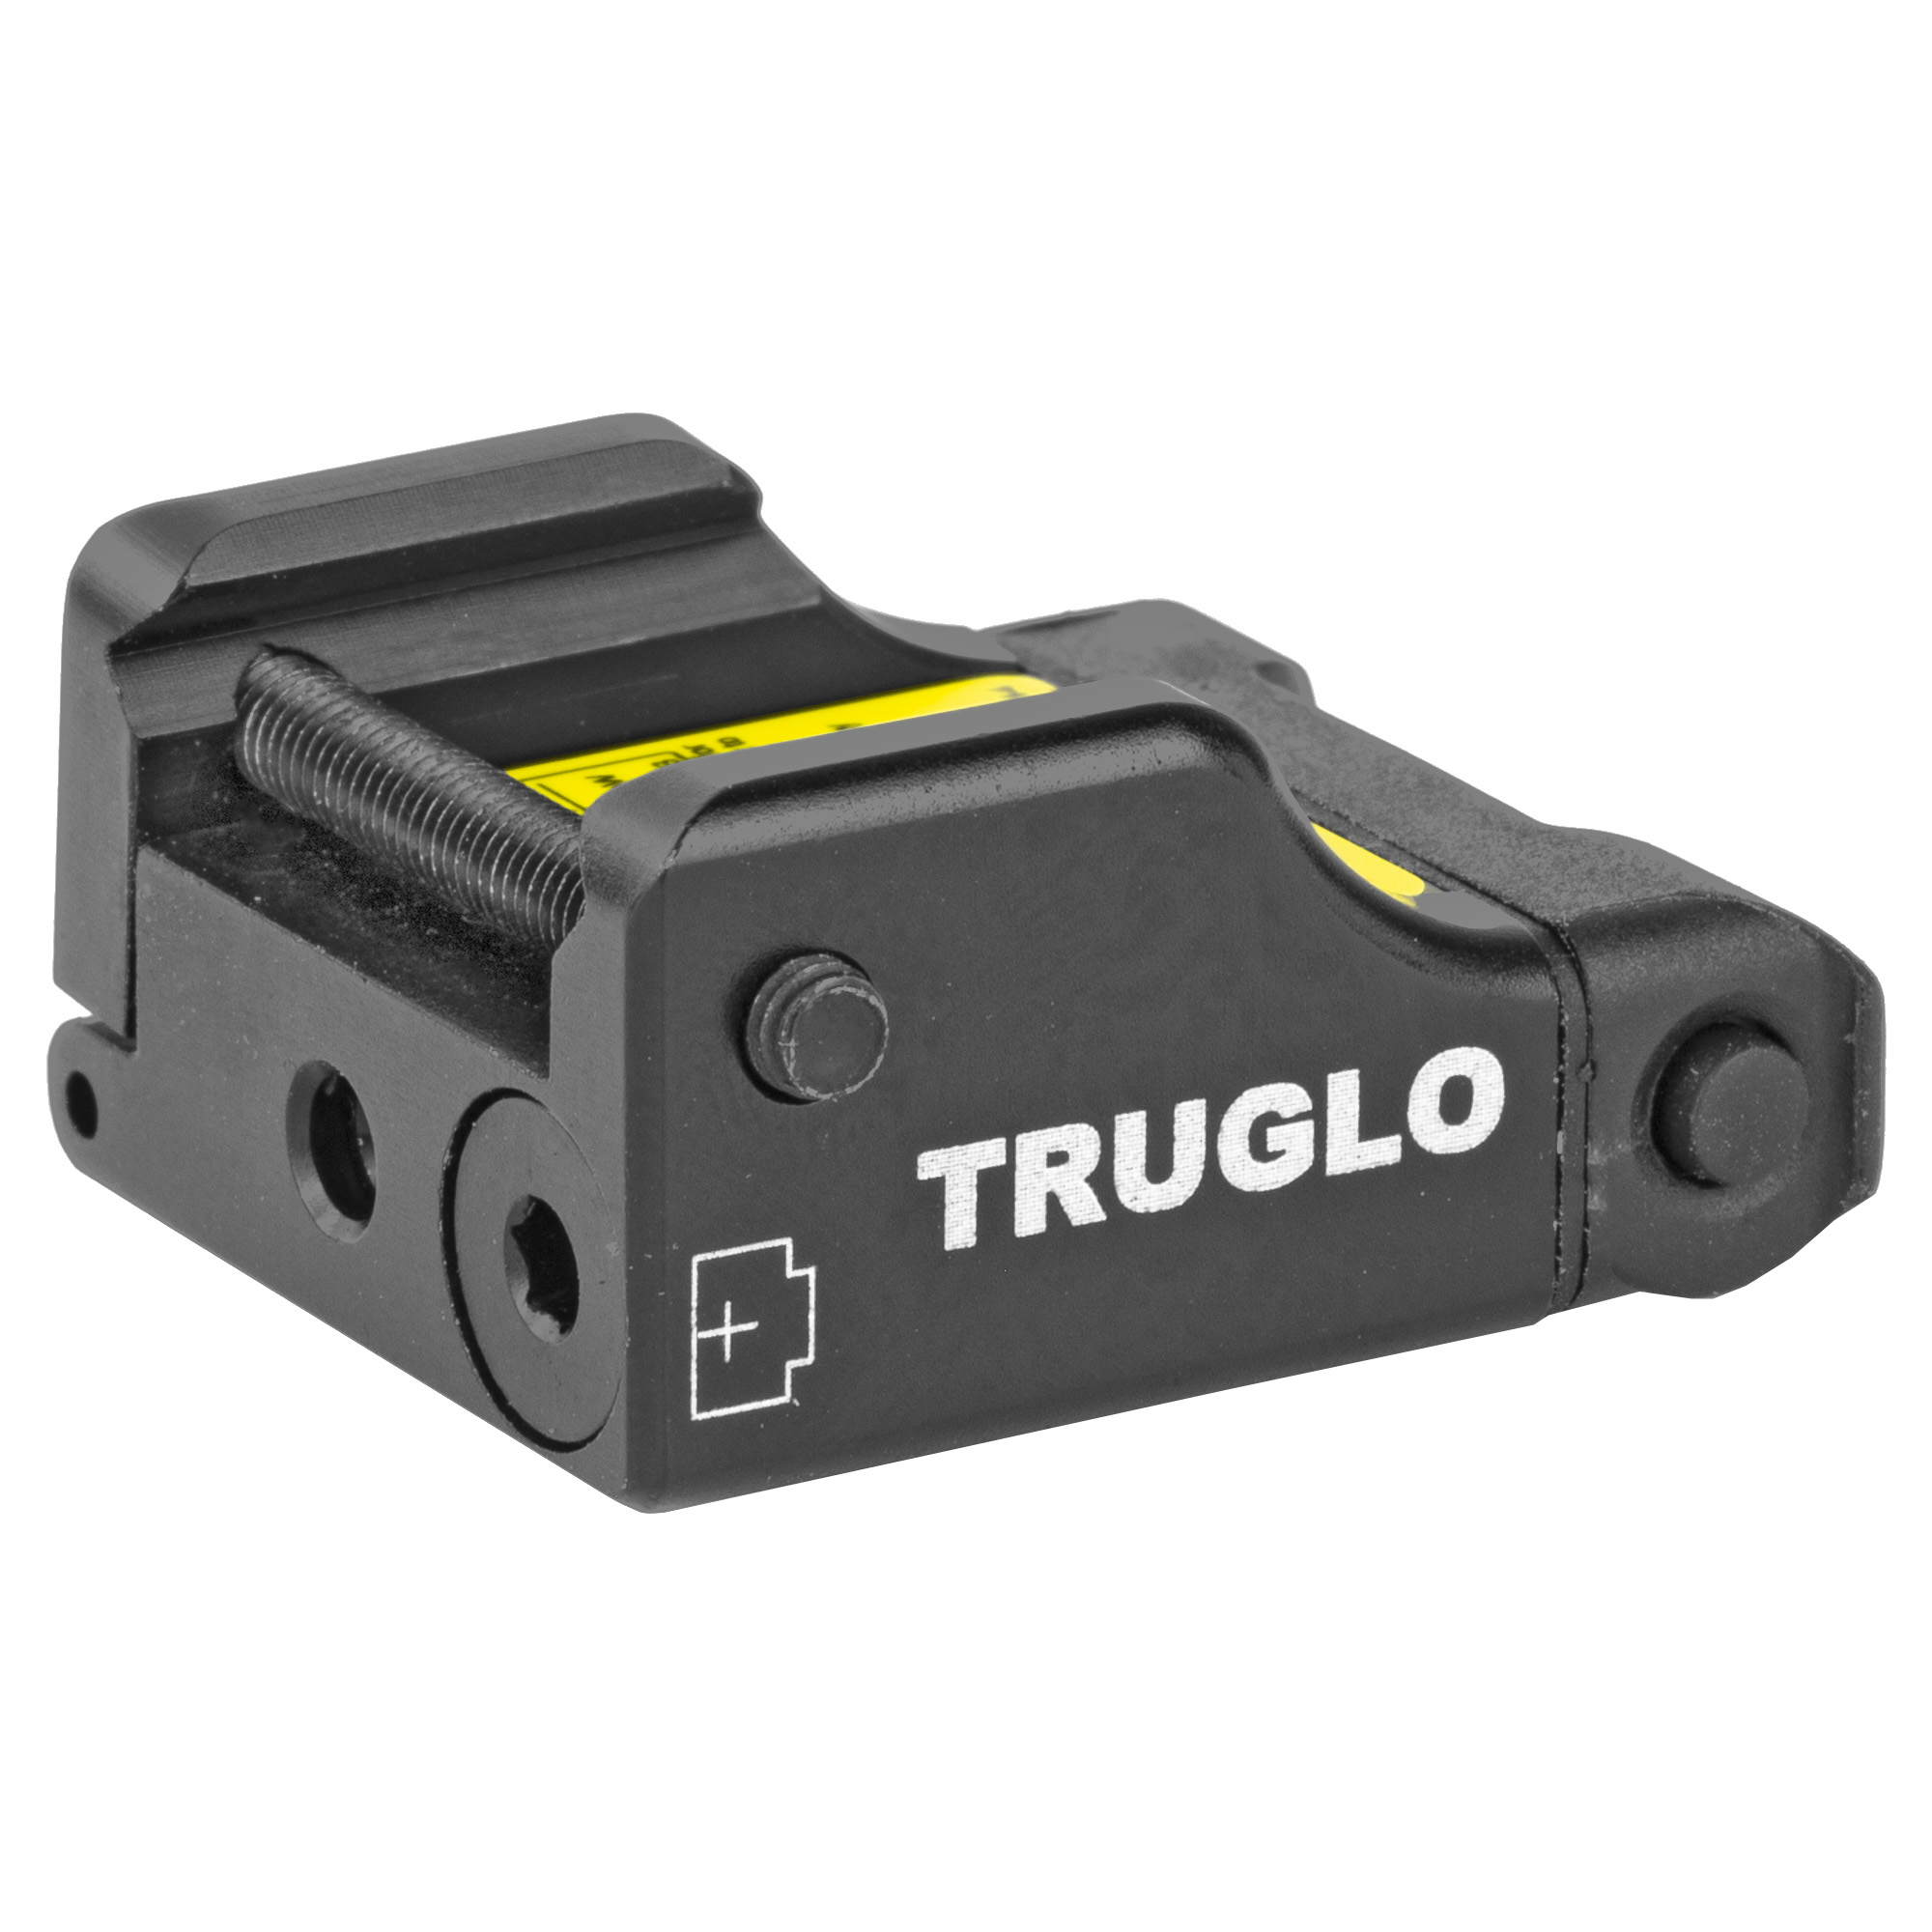 """The Truglo Micro Tac laser is a next generation"""" high-efficiency superconductor laser diode. It features a powerful 520nm green laser and easy ambidextrous push-button activation for left and right handed users."""